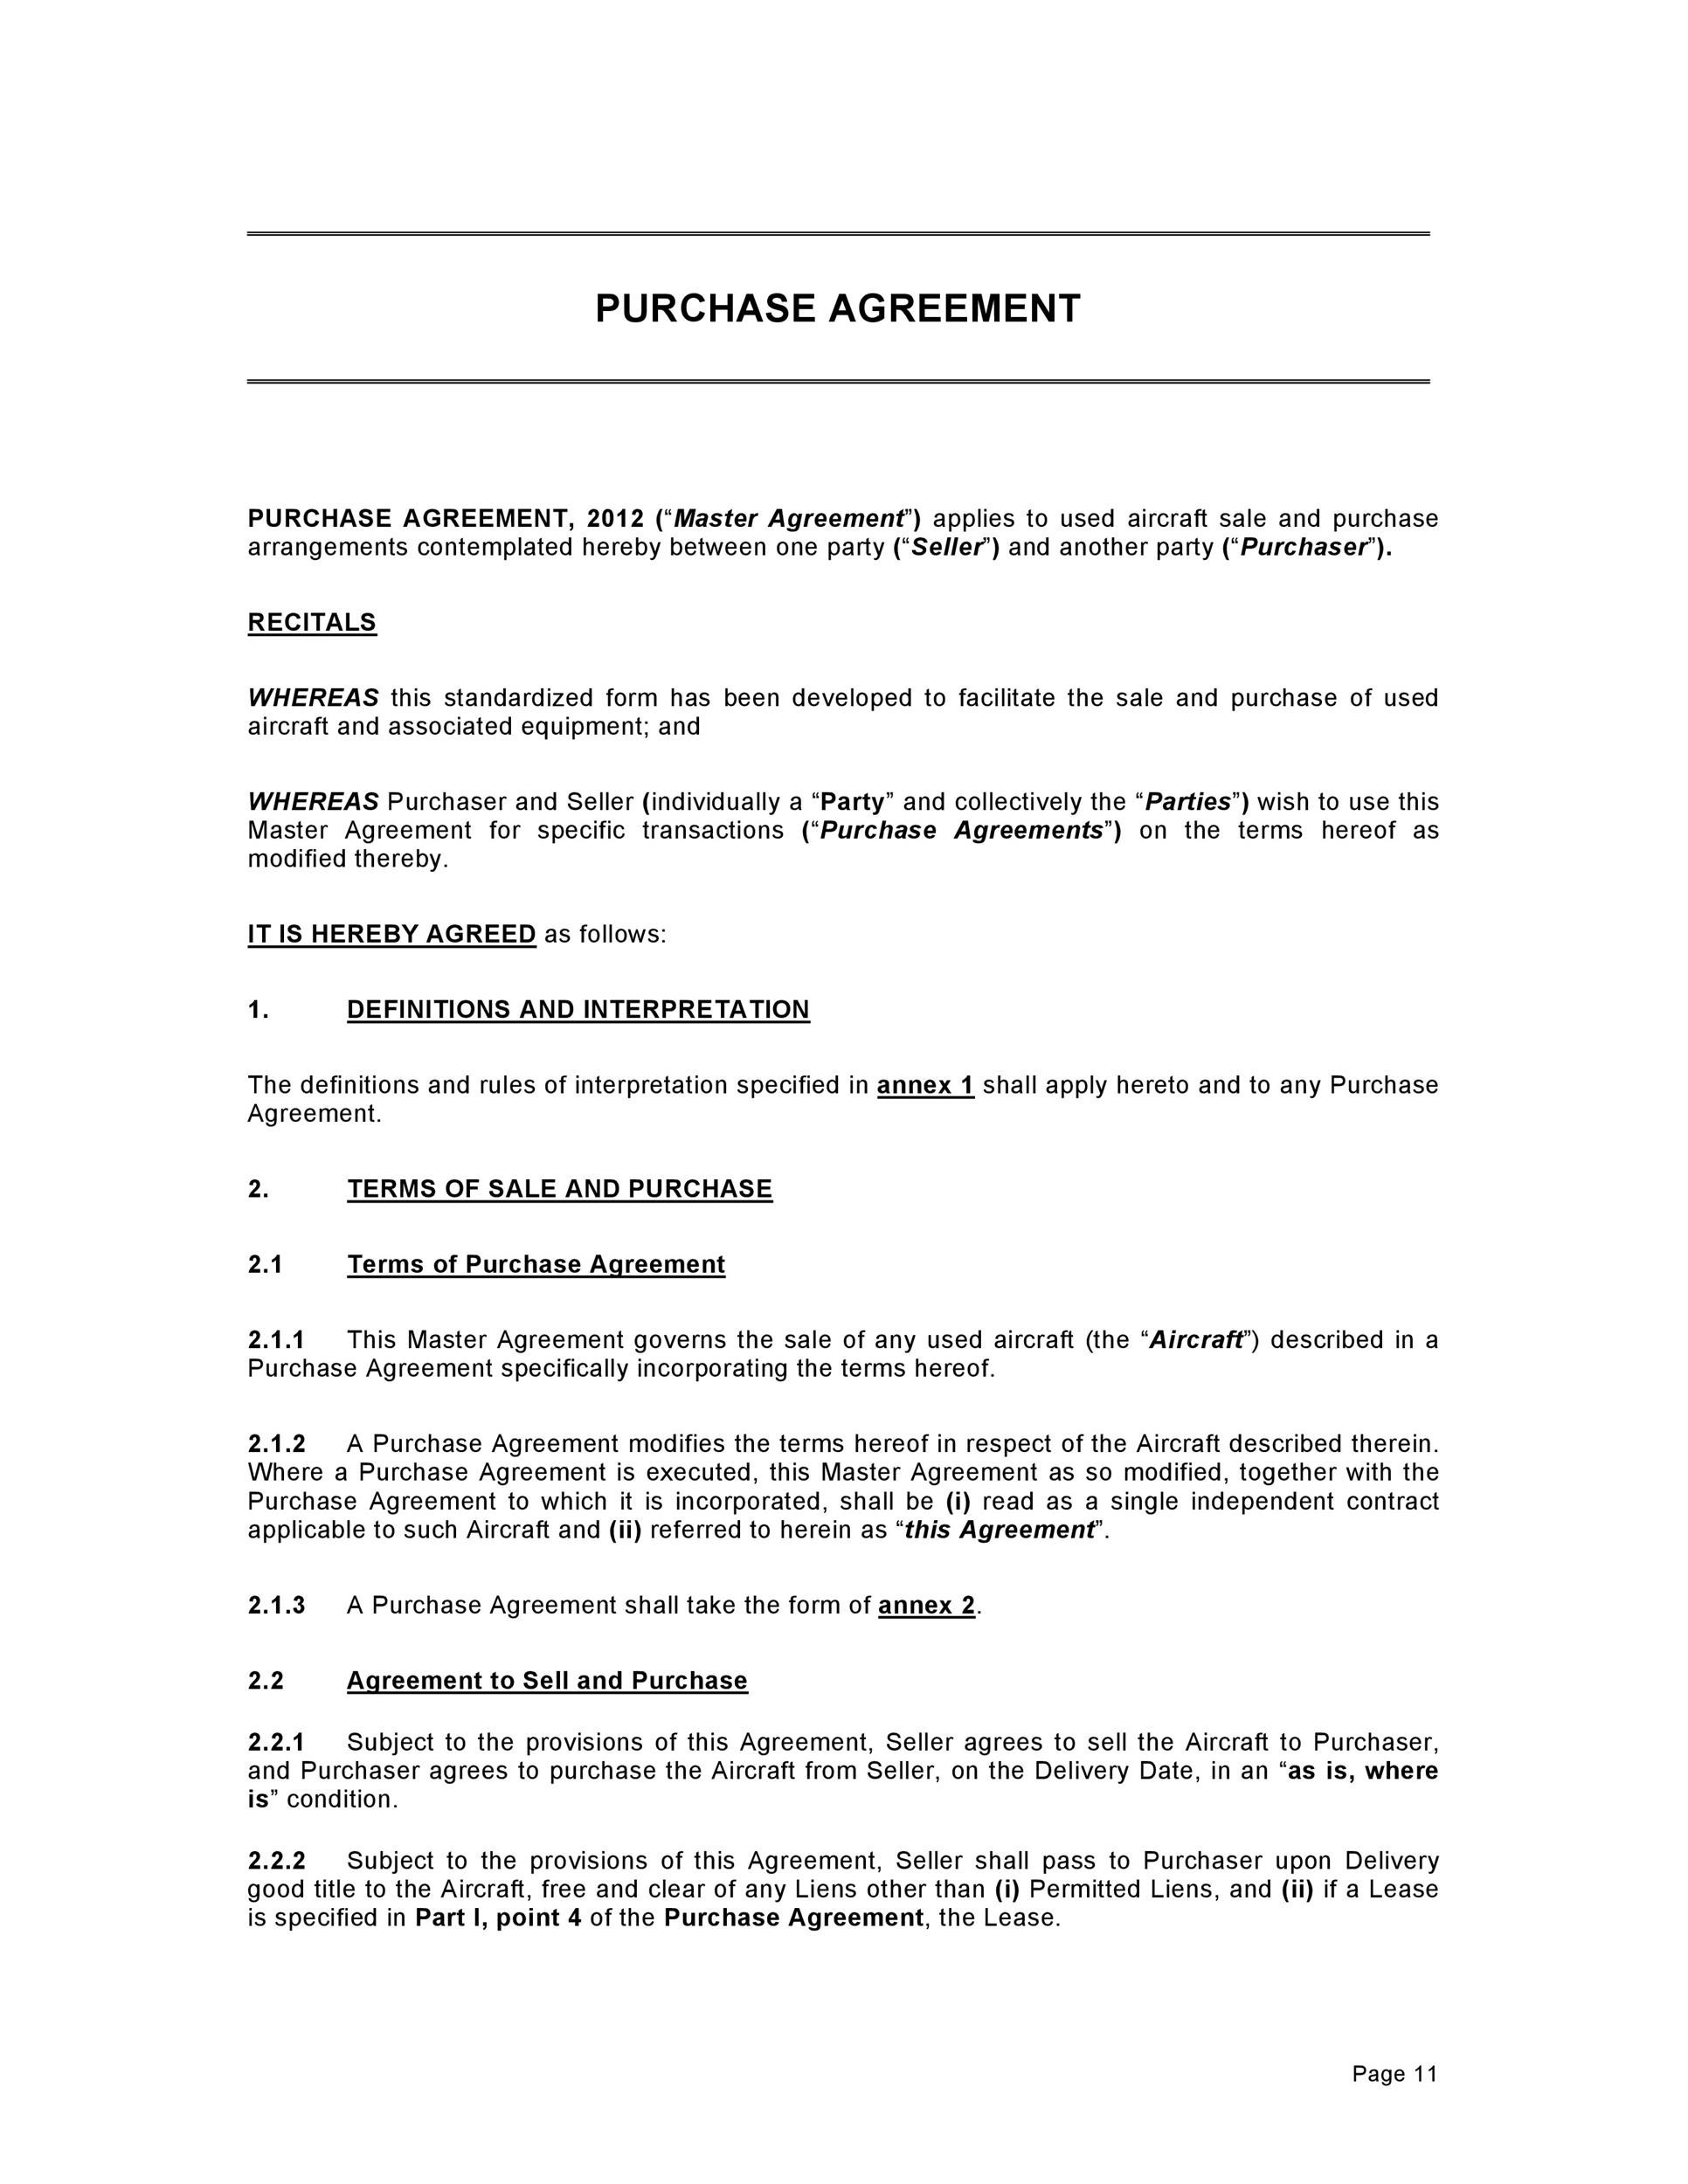 Business Agreement Form Purchase Agreement Template   Simple